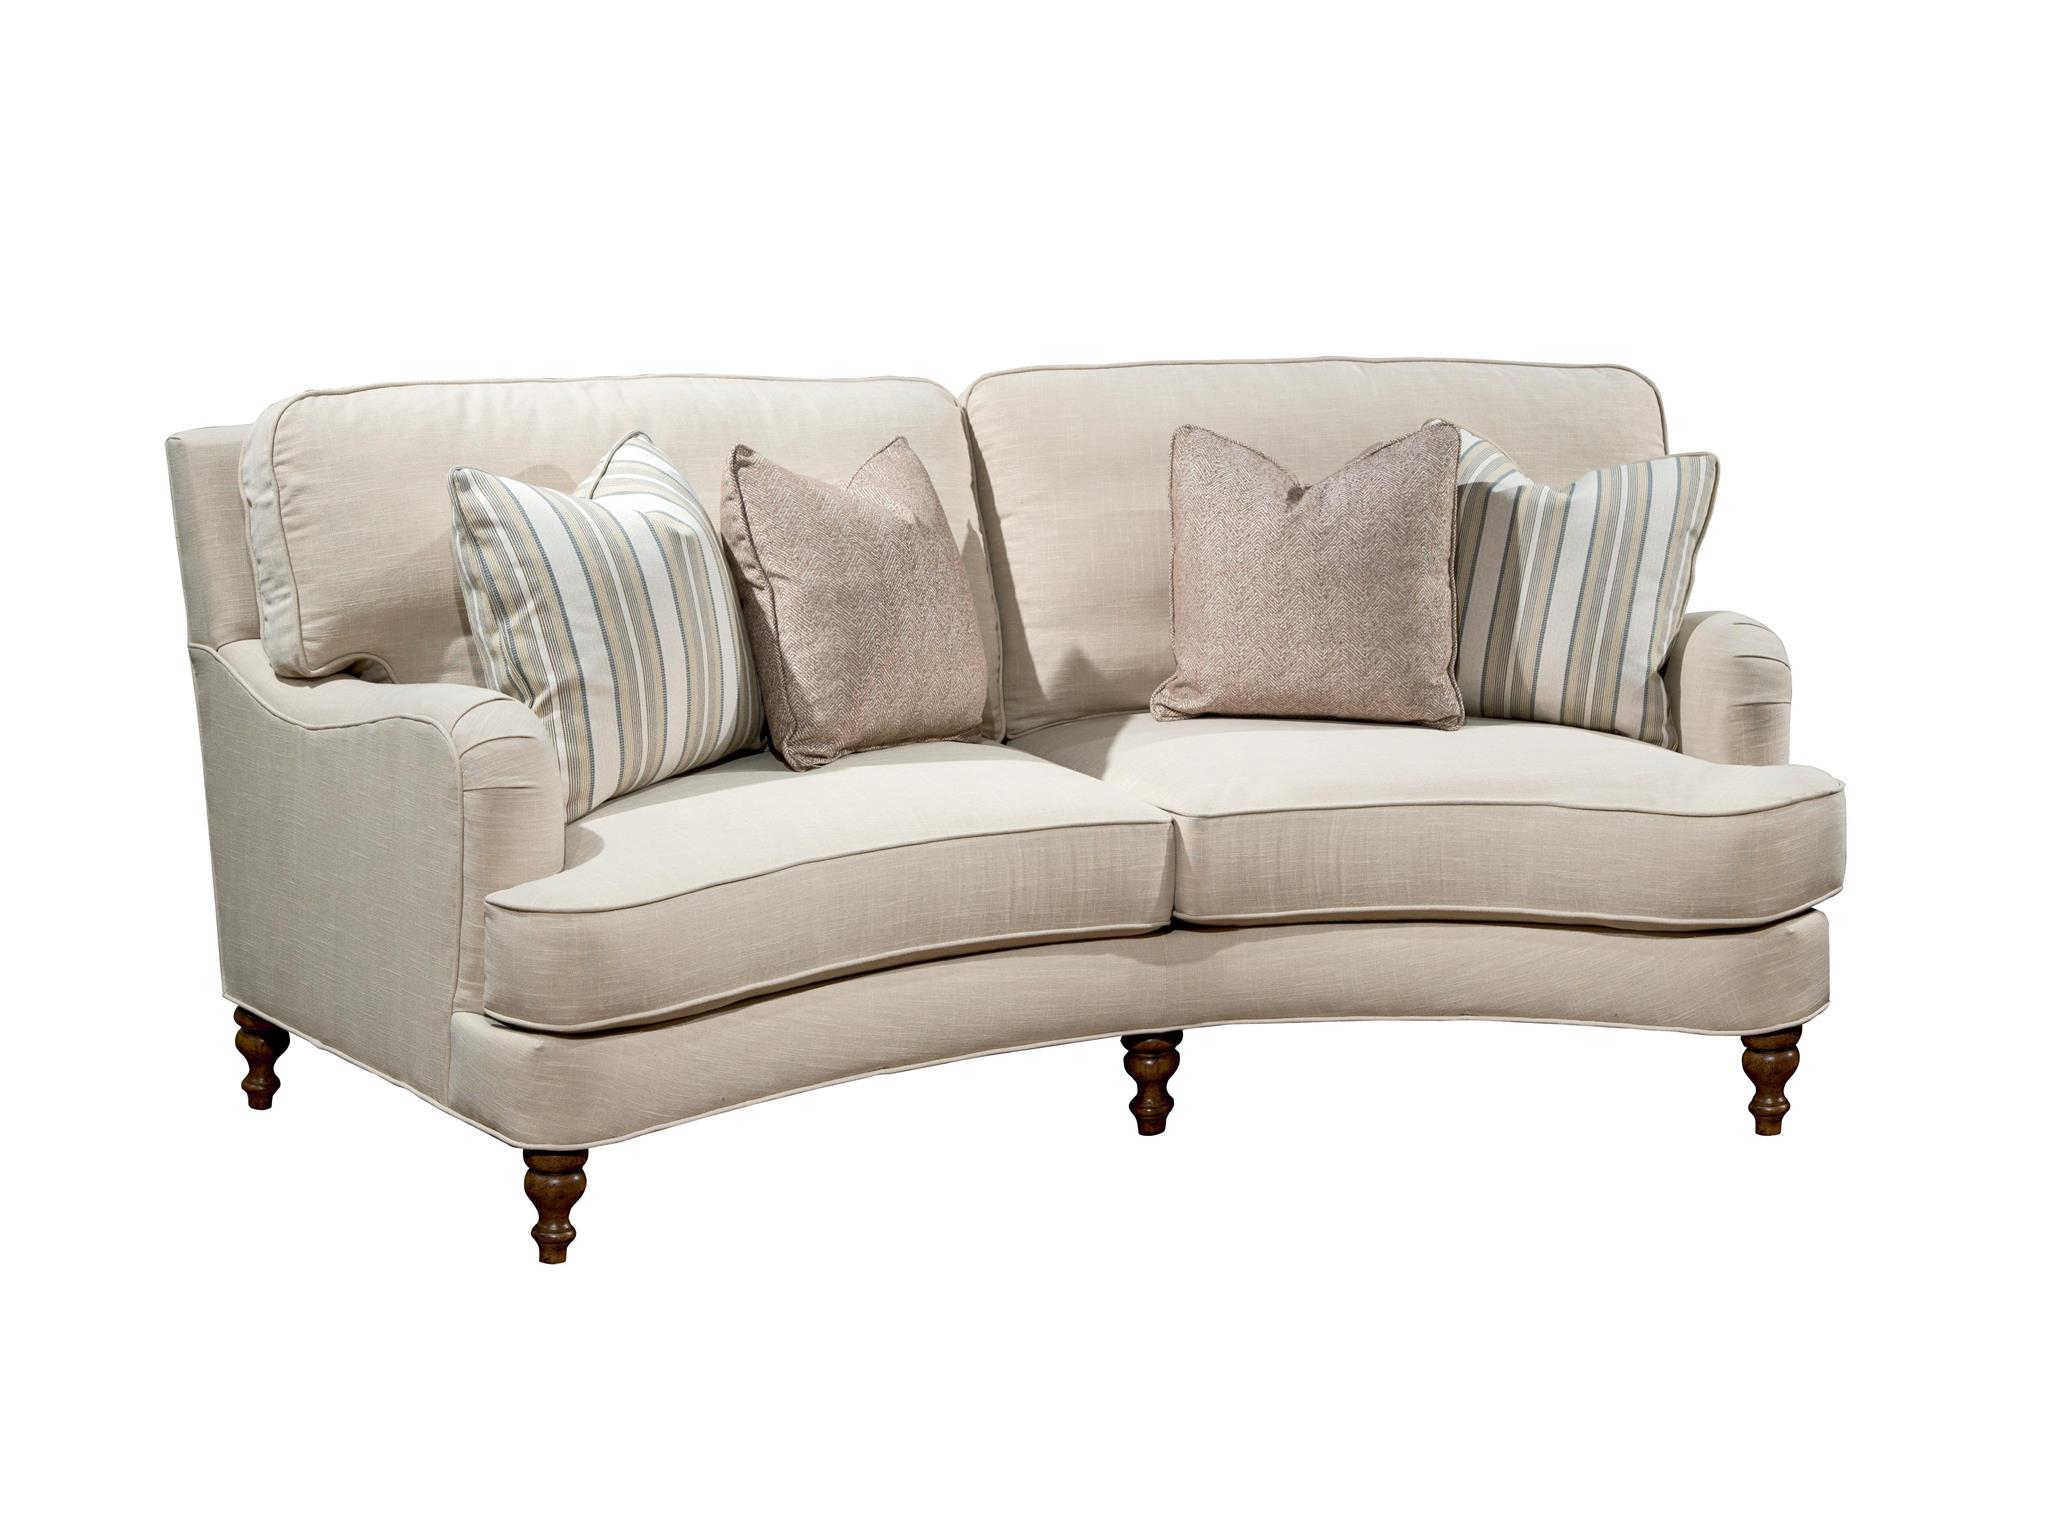 Fine Furniture Design | Grace Sofa Within Grace Sofa Chairs (Photo 4 of 20)